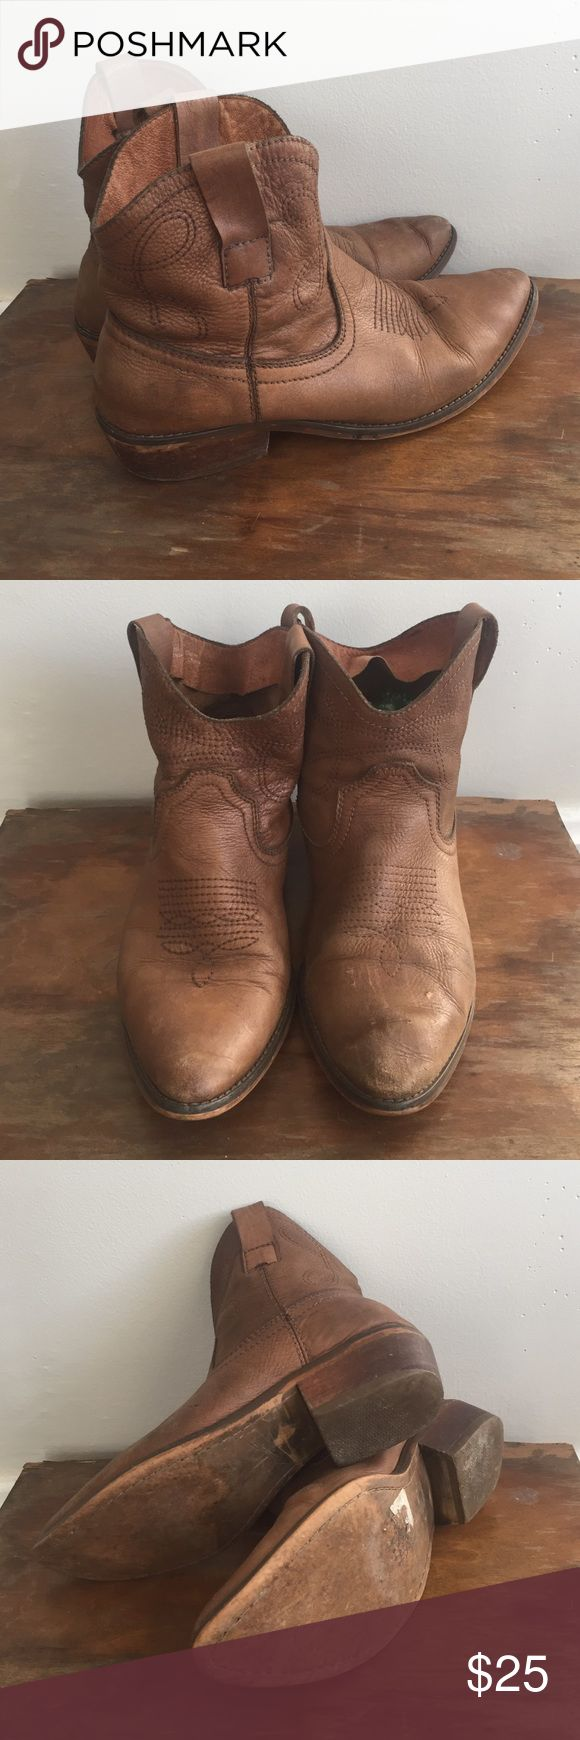 Vintage leather cowboy boots Vintage cowboy boots! Some scratches on toe of left shoe. Can probably be buffed out with polish. Really comfortable boot! Vintage Shoes Ankle Boots & Booties